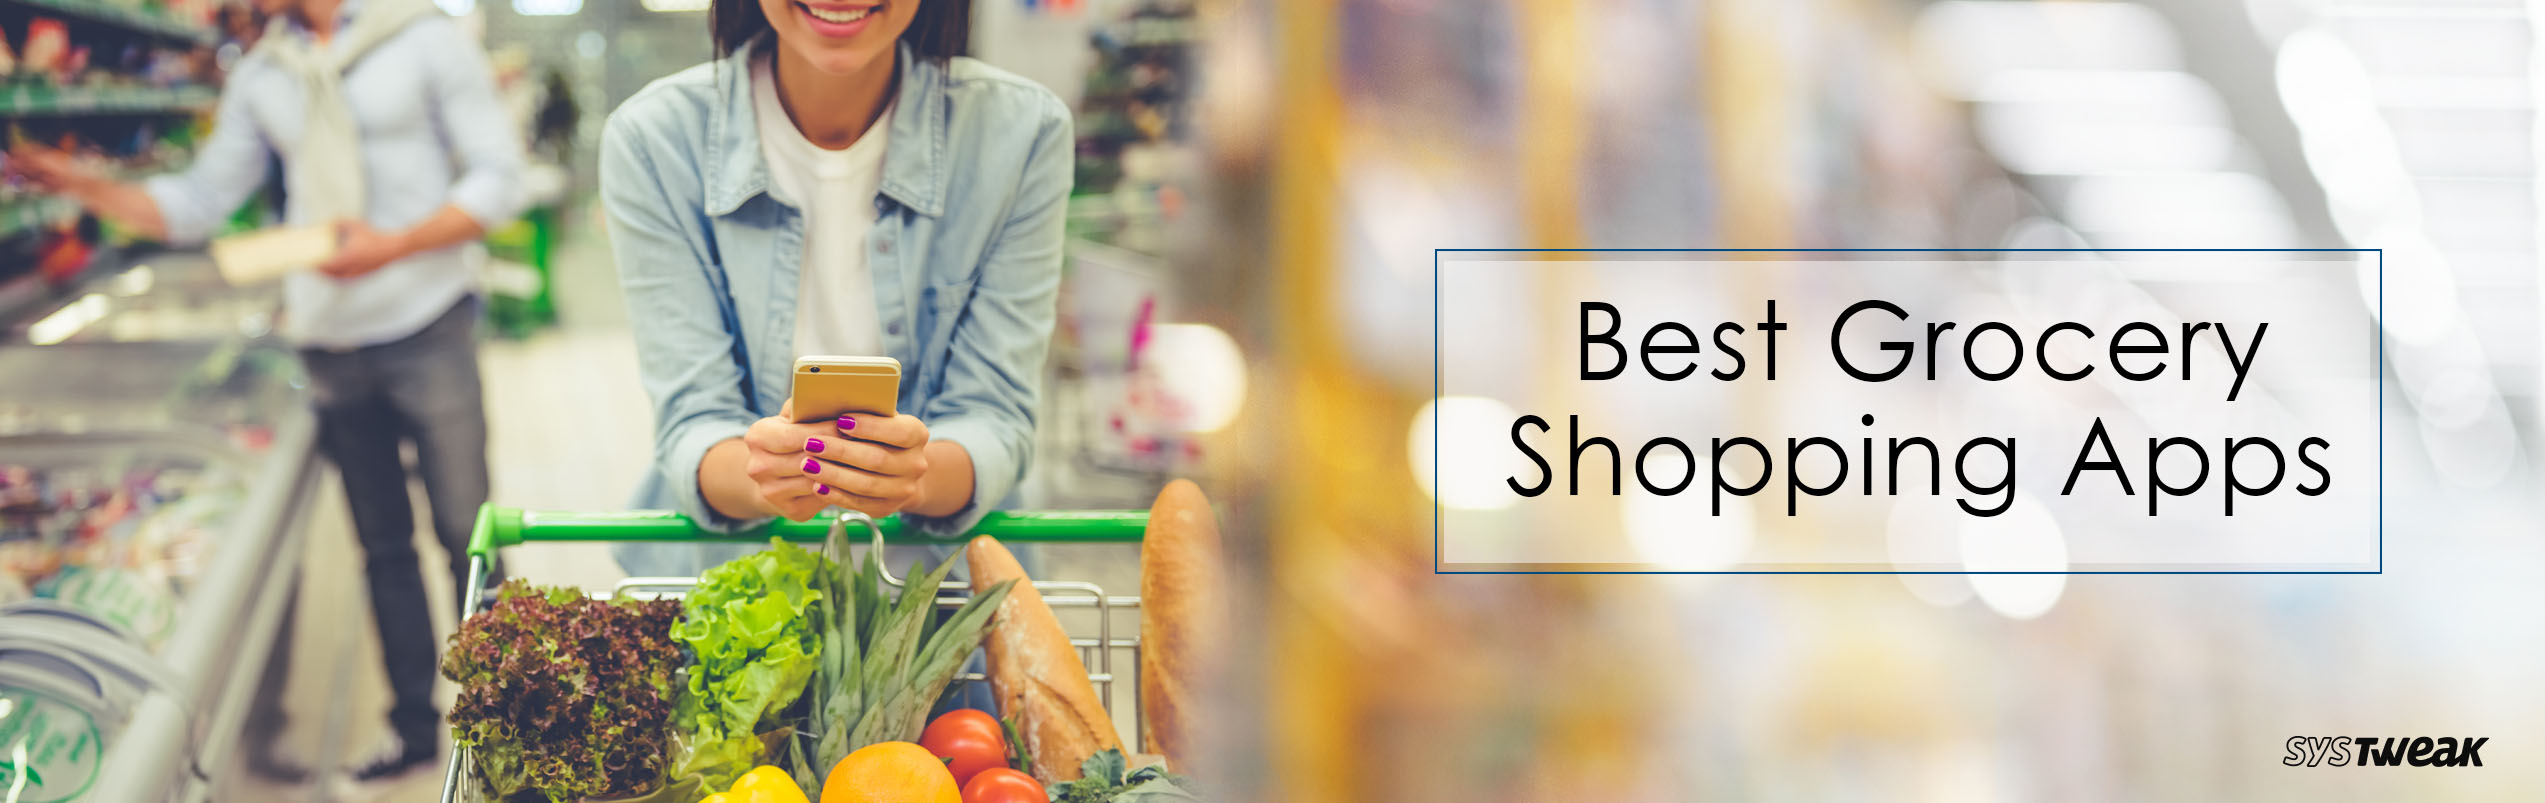 10 Best Grocery Shopping Apps for your Next Spree